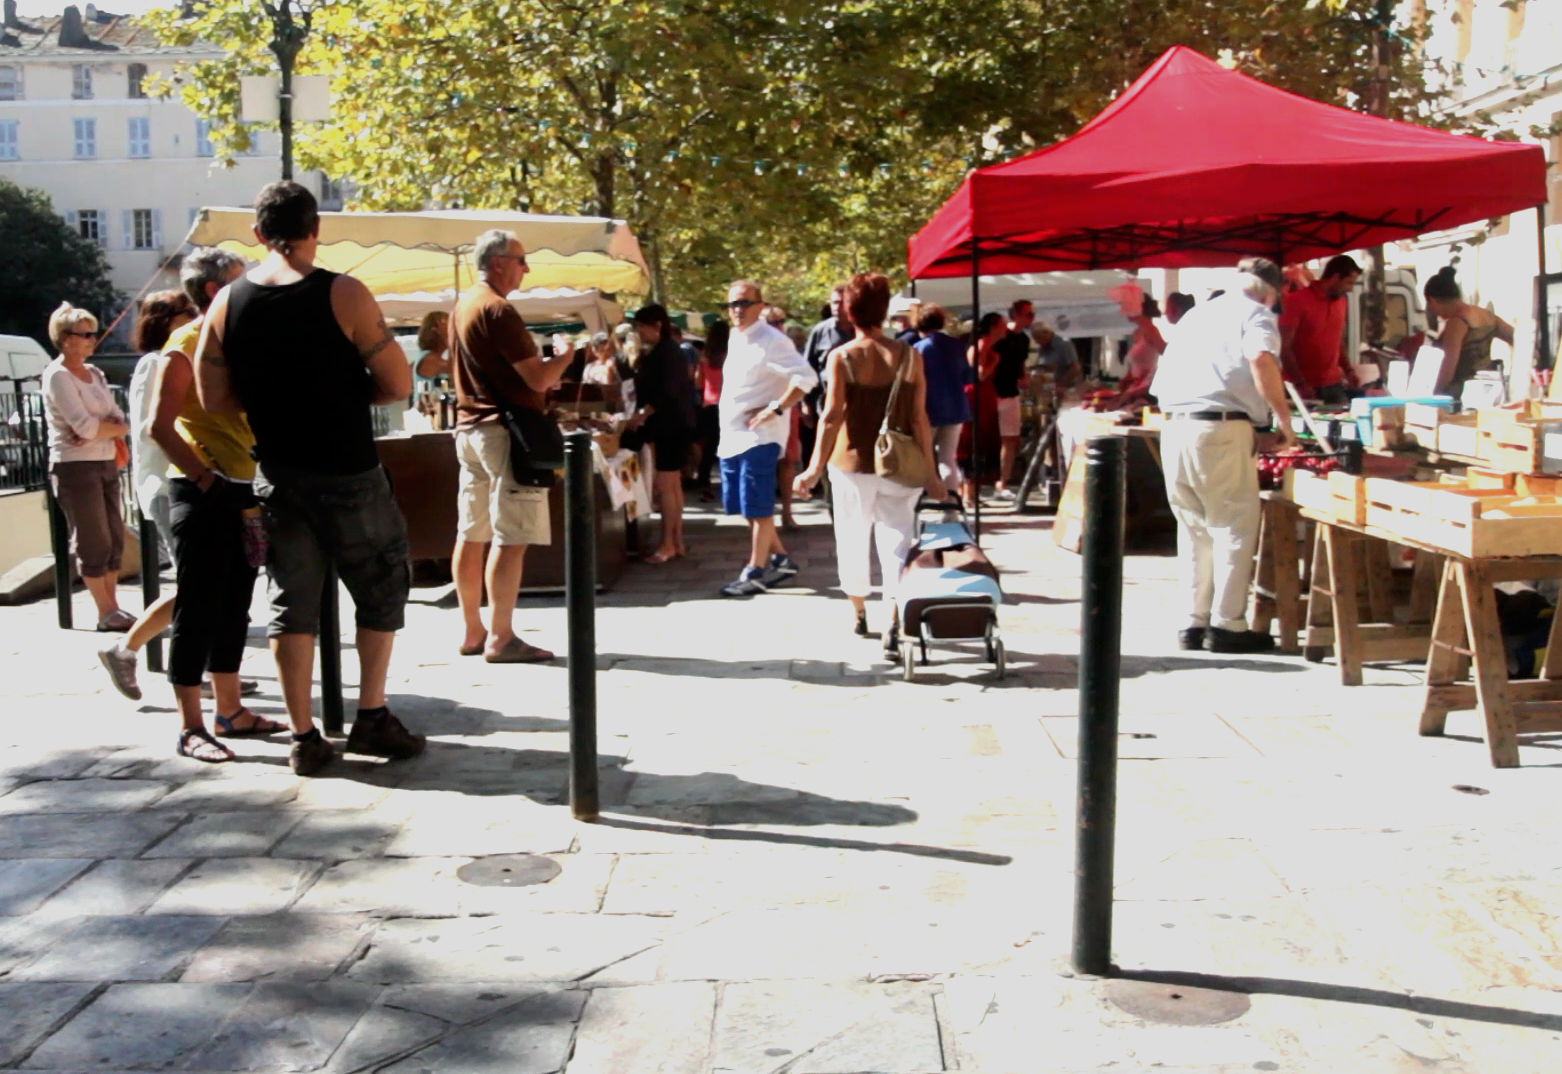 The market crowd at the Place St Nicolas in Bastia.